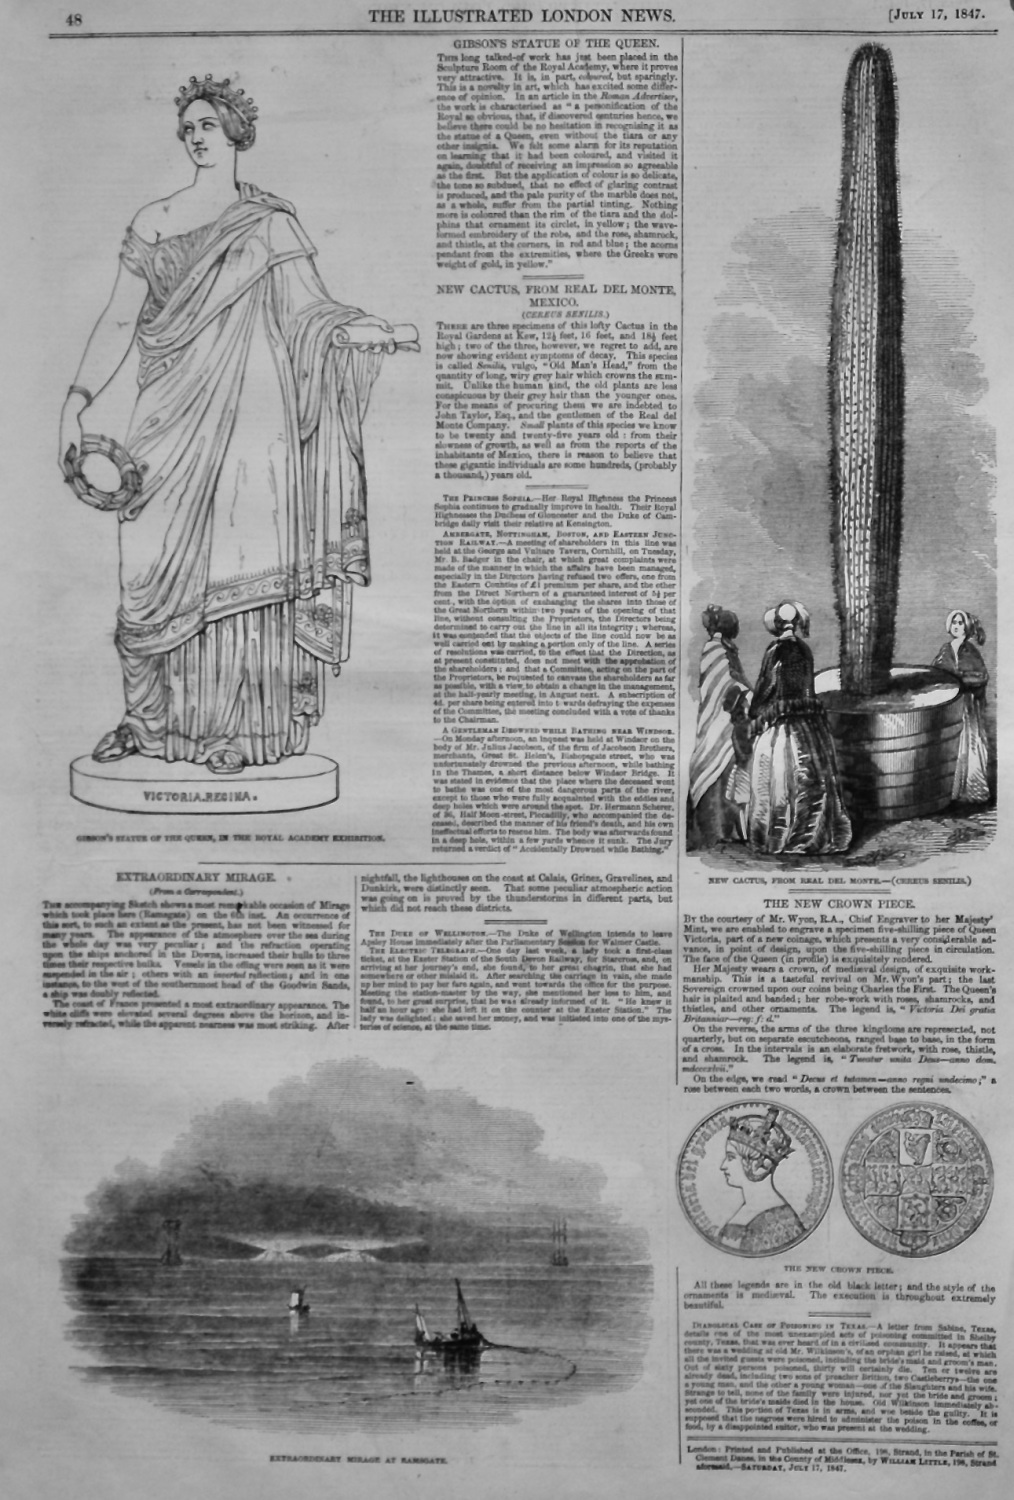 Gibson's Statue of the Queen.  1847.